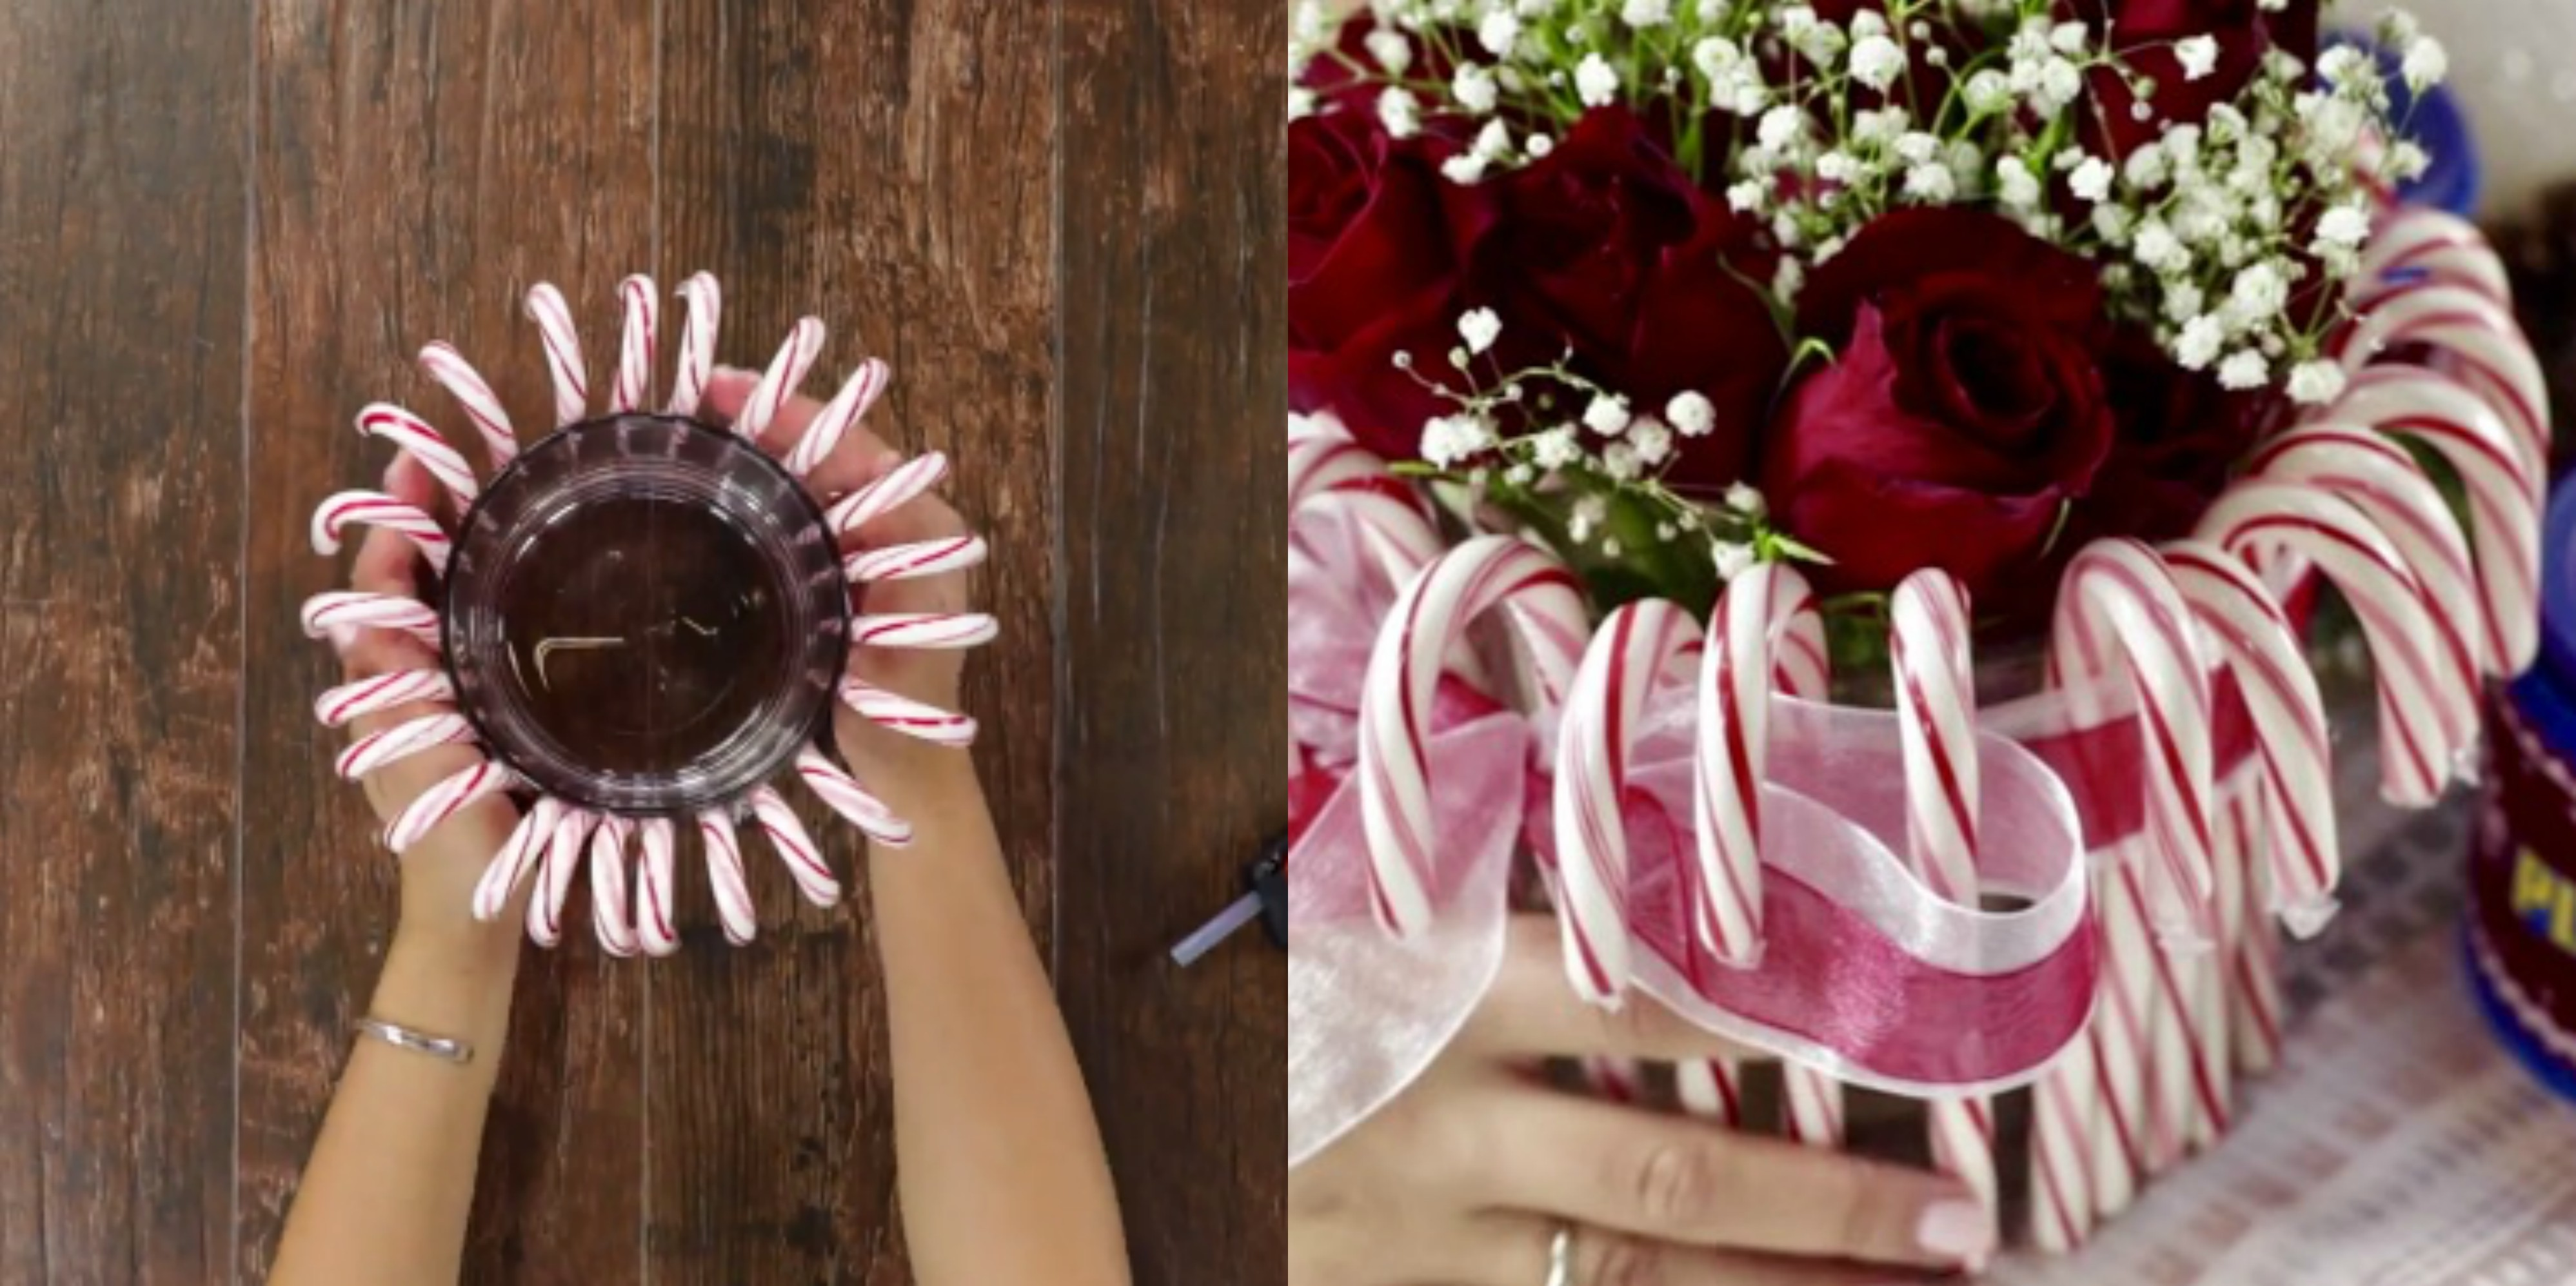 How To Make A Cute Holiday Centerpiece With CANDY CANES